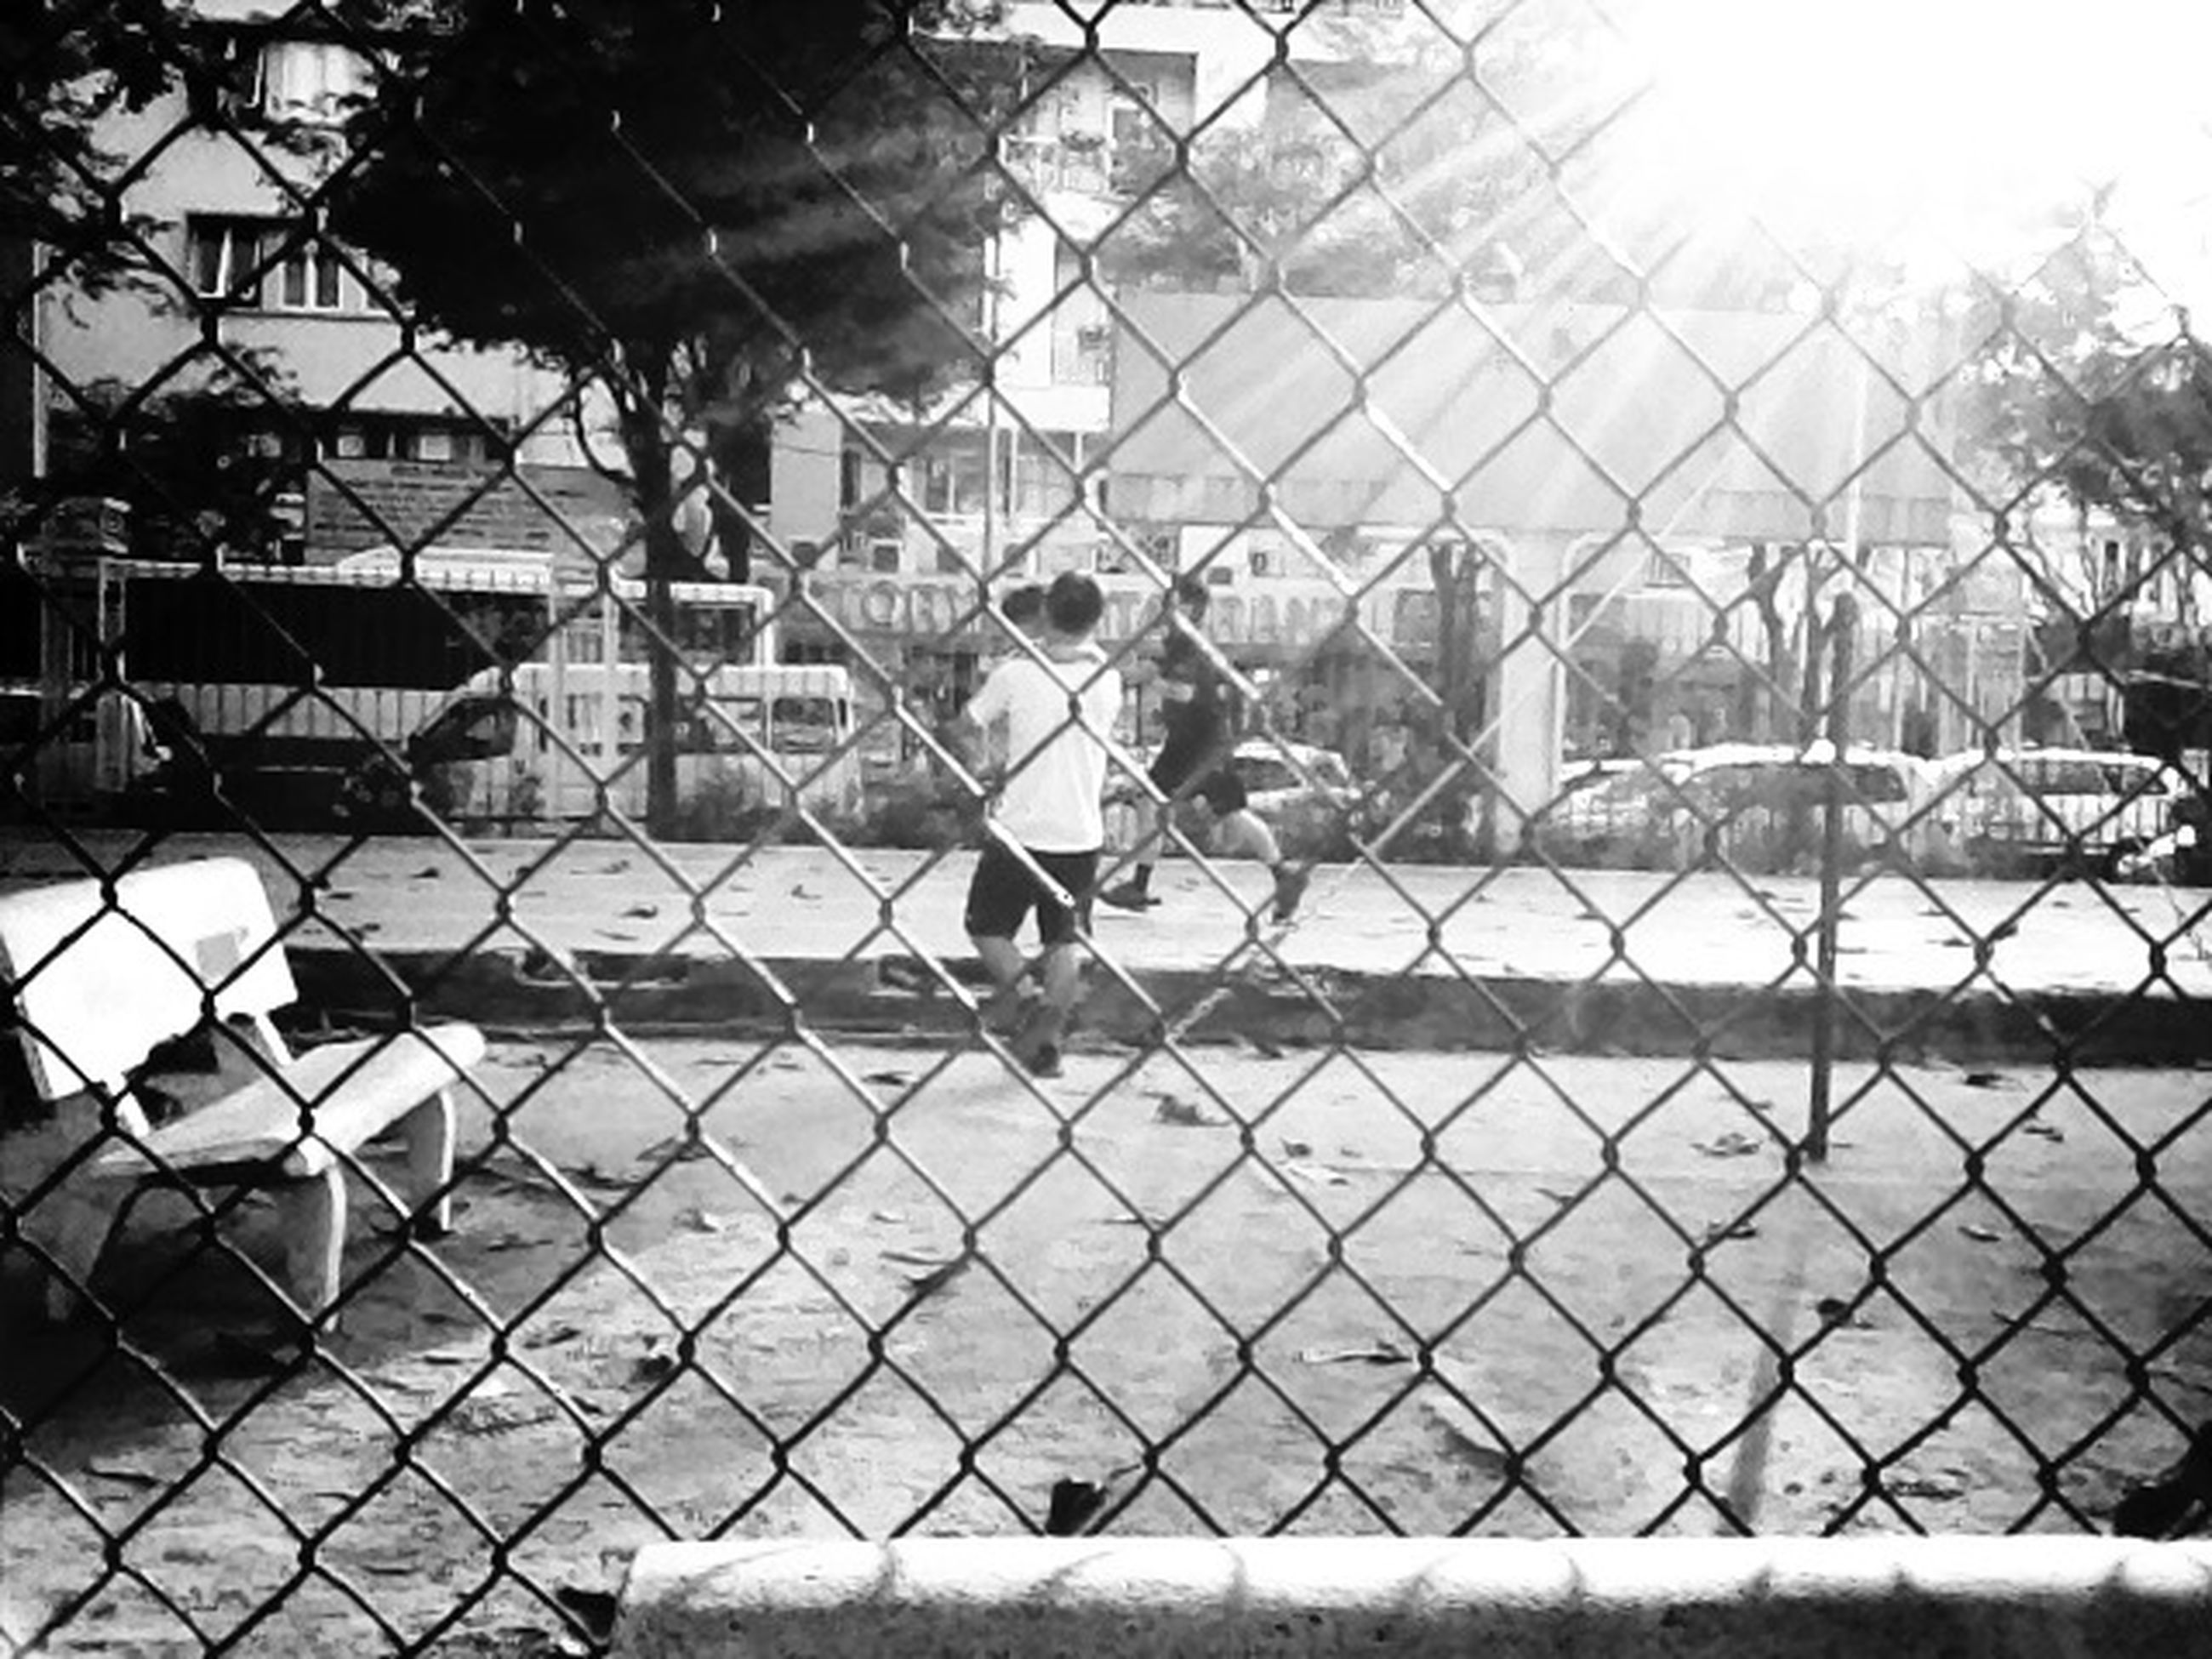 chainlink fence, fence, protection, park - man made space, metal, lifestyles, sunlight, safety, childhood, playground, leisure activity, day, tree, outdoors, focus on foreground, incidental people, shadow, street